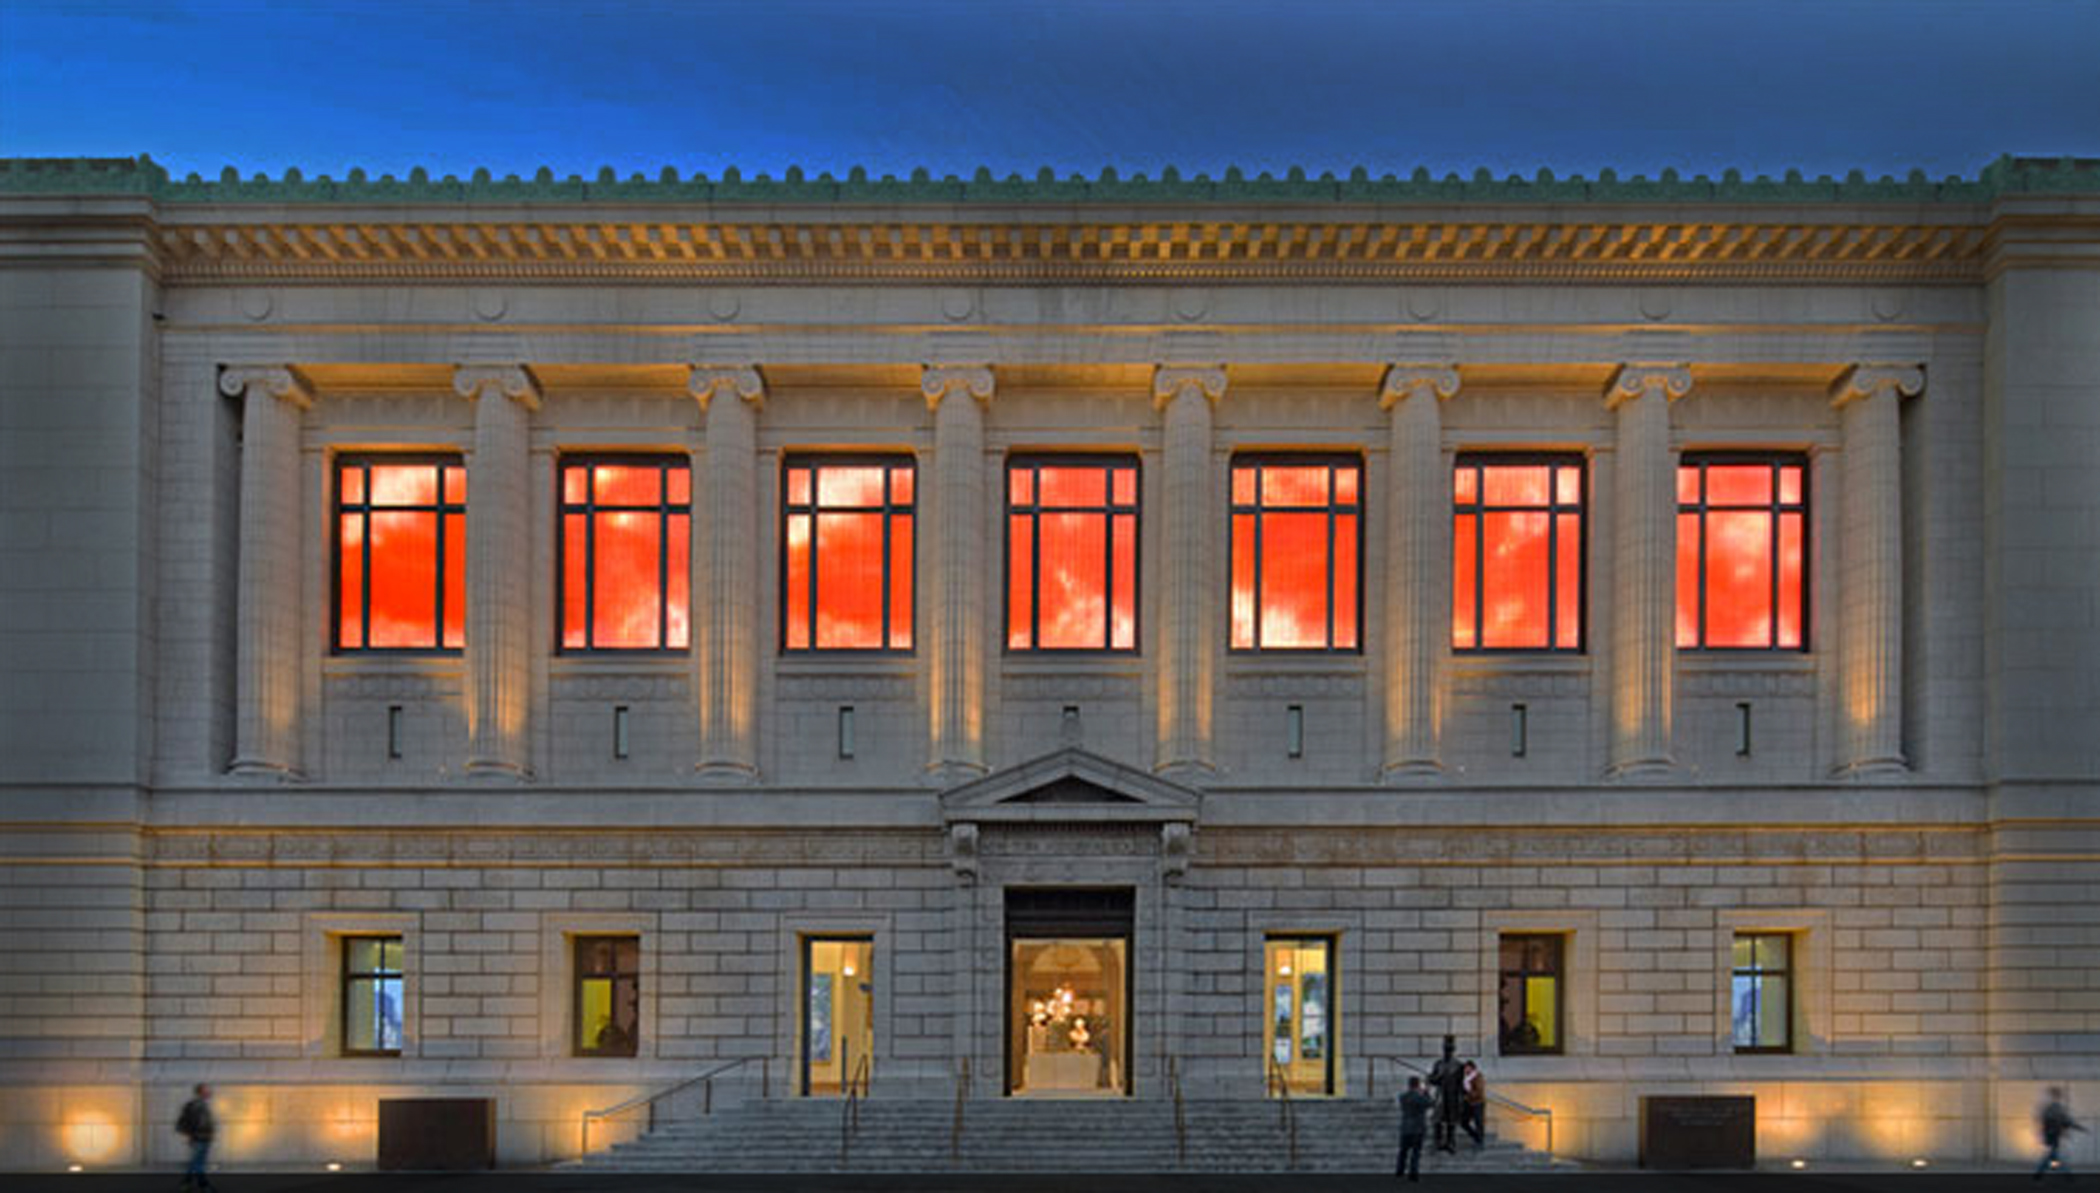 LUCY G. MOSES PRESERVATION AWARD 2012  The New York Landmarks Conservancy For The New York Historical Society